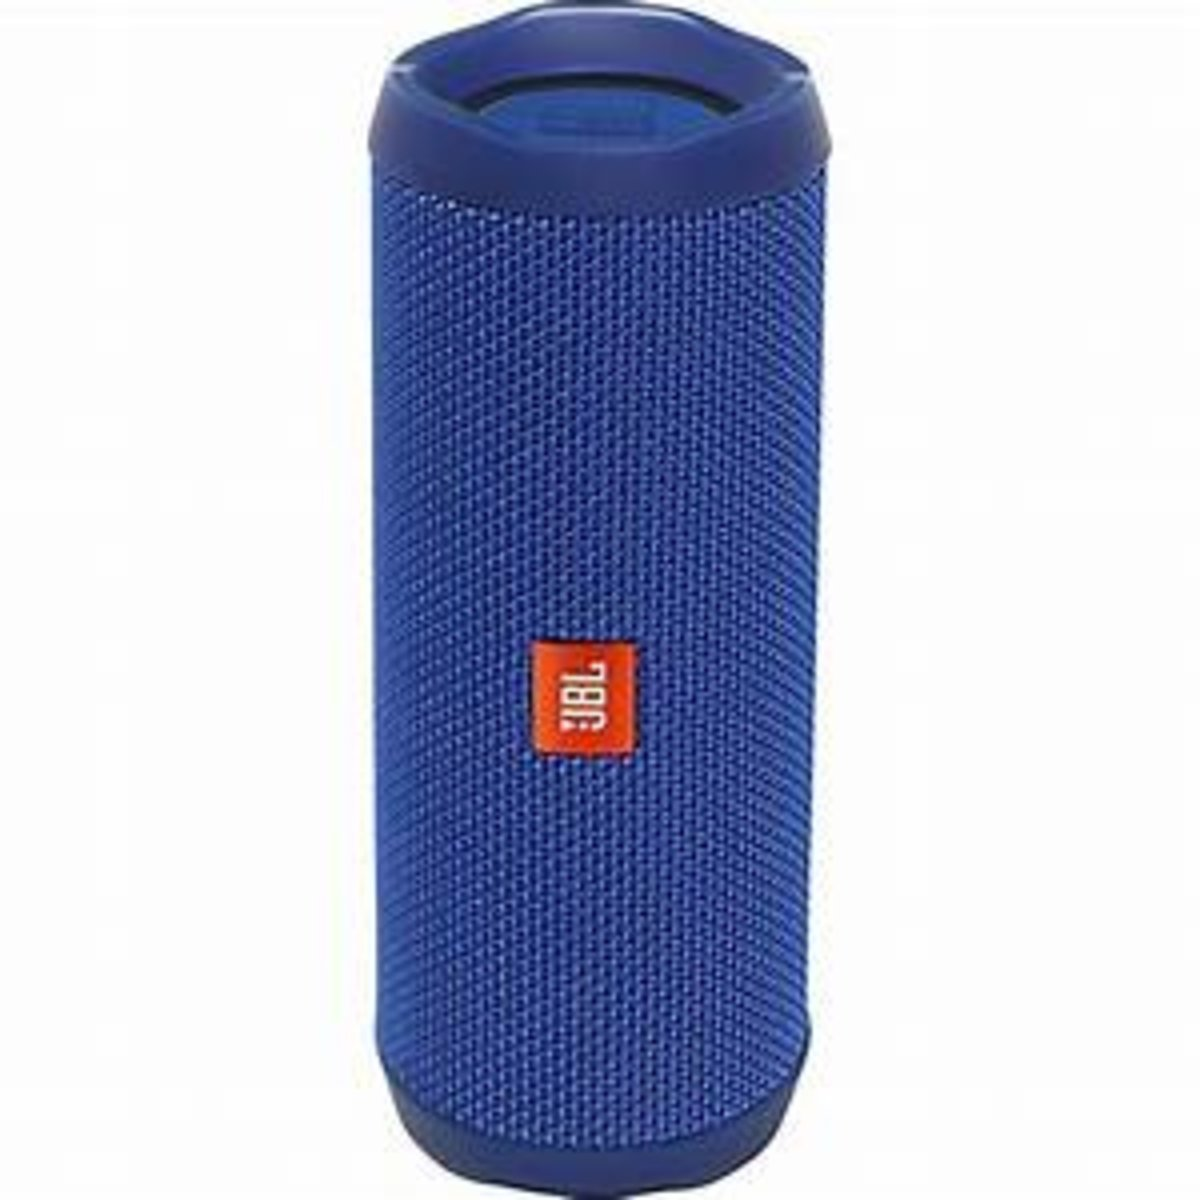 Flip 4 Wireless Portable Stereo Speaker - [Blue]  (Parallel Imported)